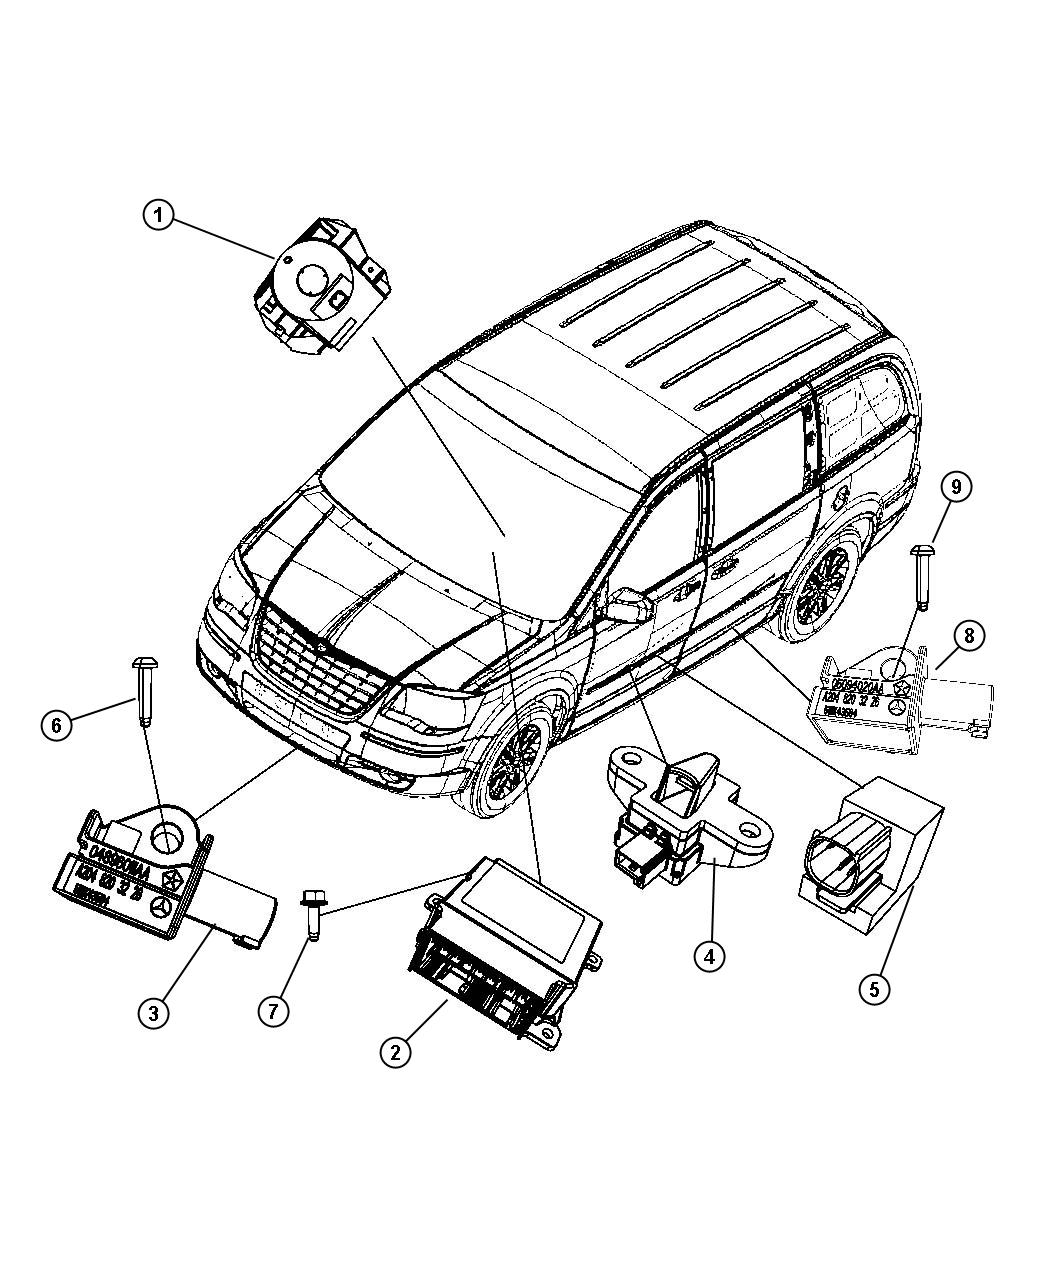 Wiring diagram for 1997 dodge caravan wiring discover your wiring diagram